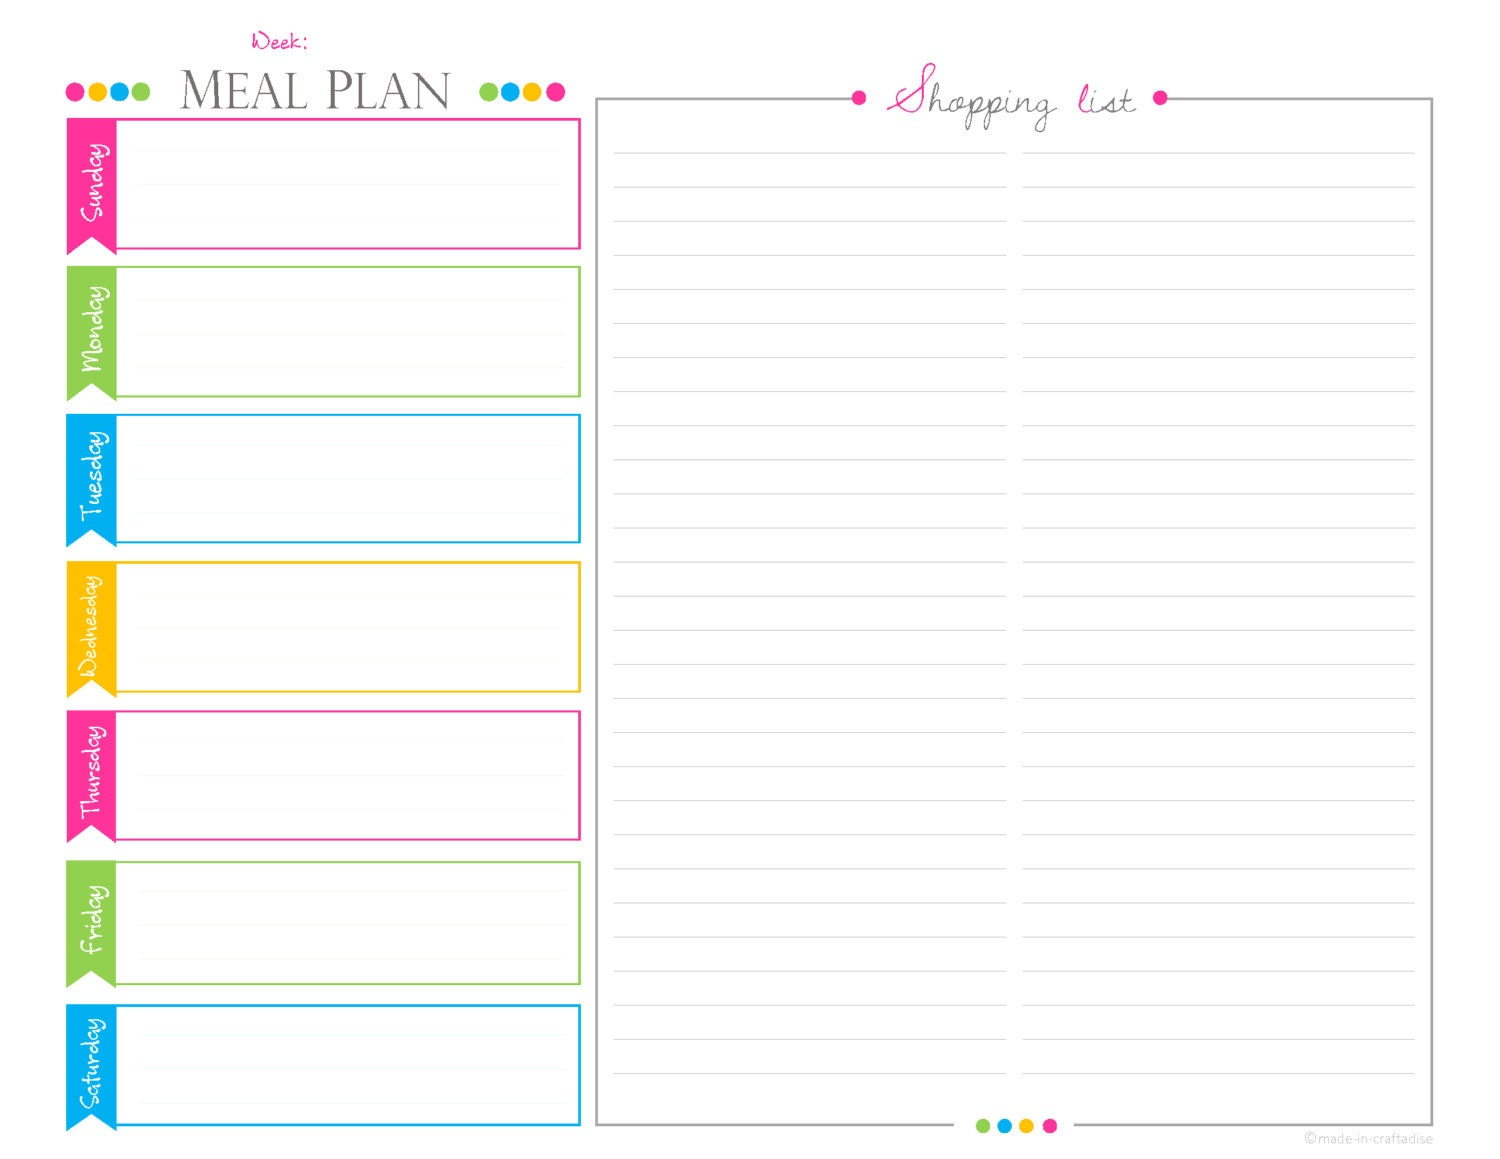 monthly meal planner template with grocery list - weekly meal planningshopping list pdf planner landscape